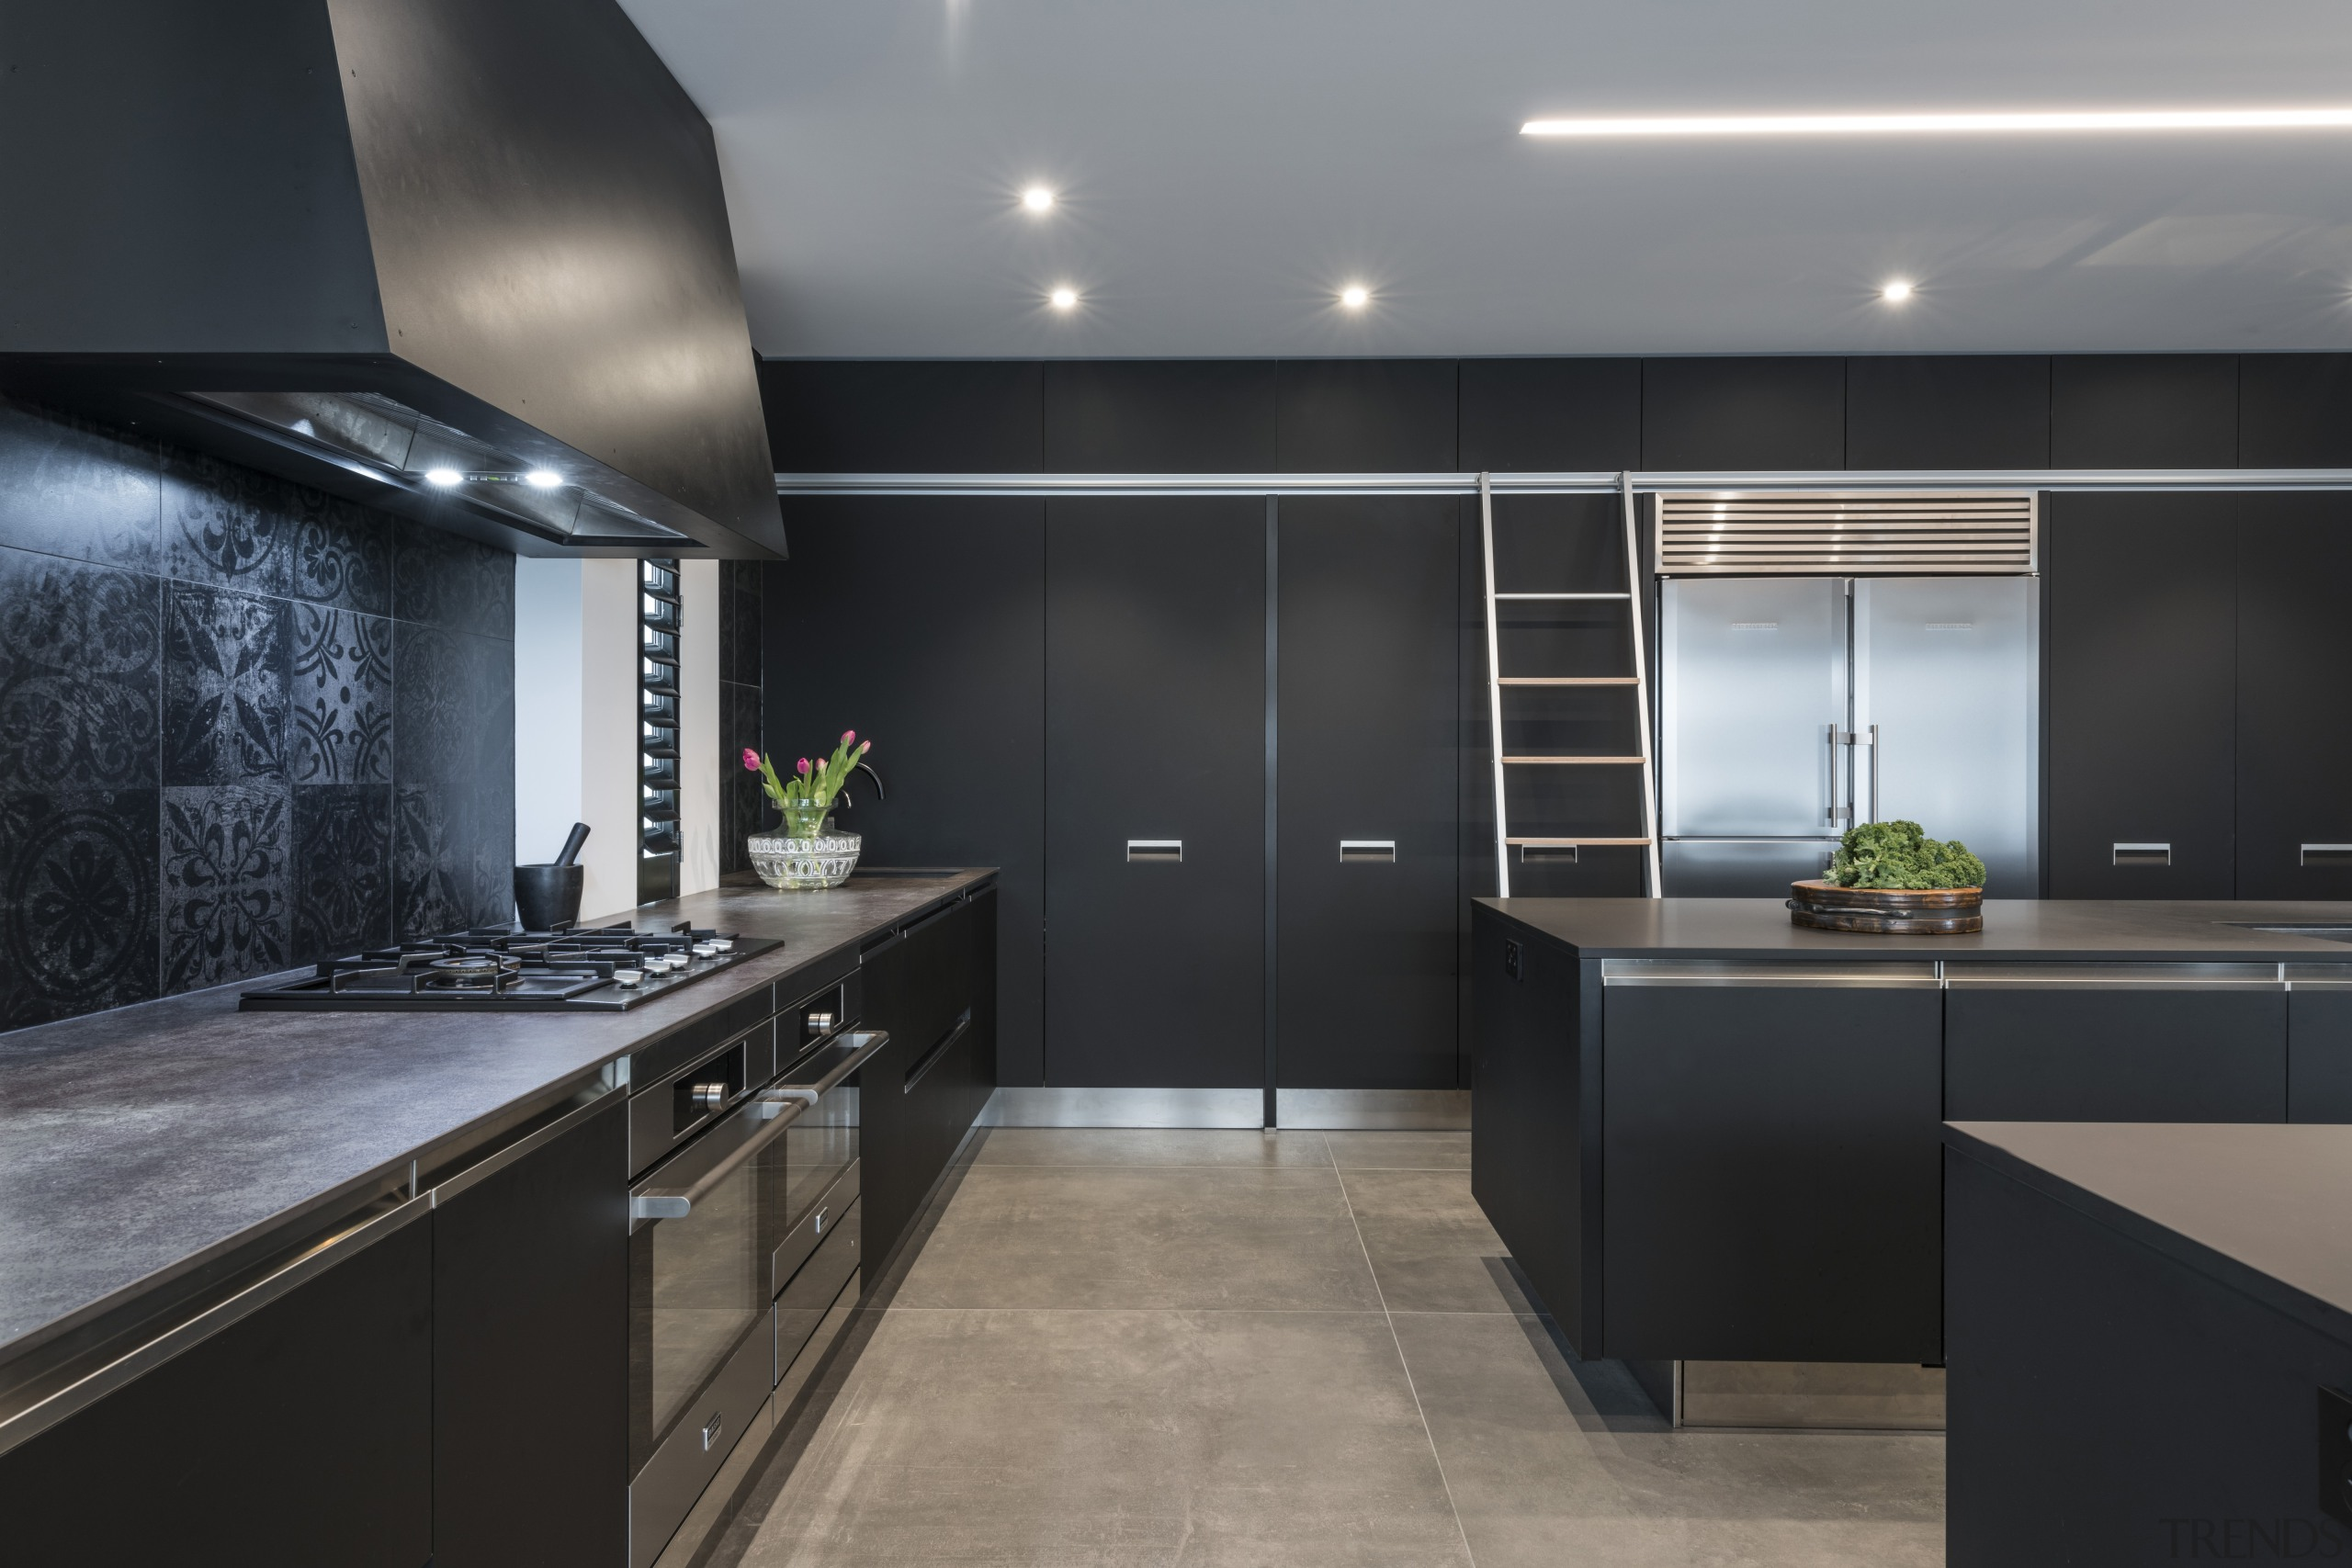 Highly Commended – Emma Morris – Eternodesign – architecture, building, cabinetry, ceiling, countertop, cupboard, design, floor, flooring, furniture, home, house, interior design, kitchen, kitchen stove, lighting, material property, property, real estate, room, tile, under-cabinet lighting, black, gray